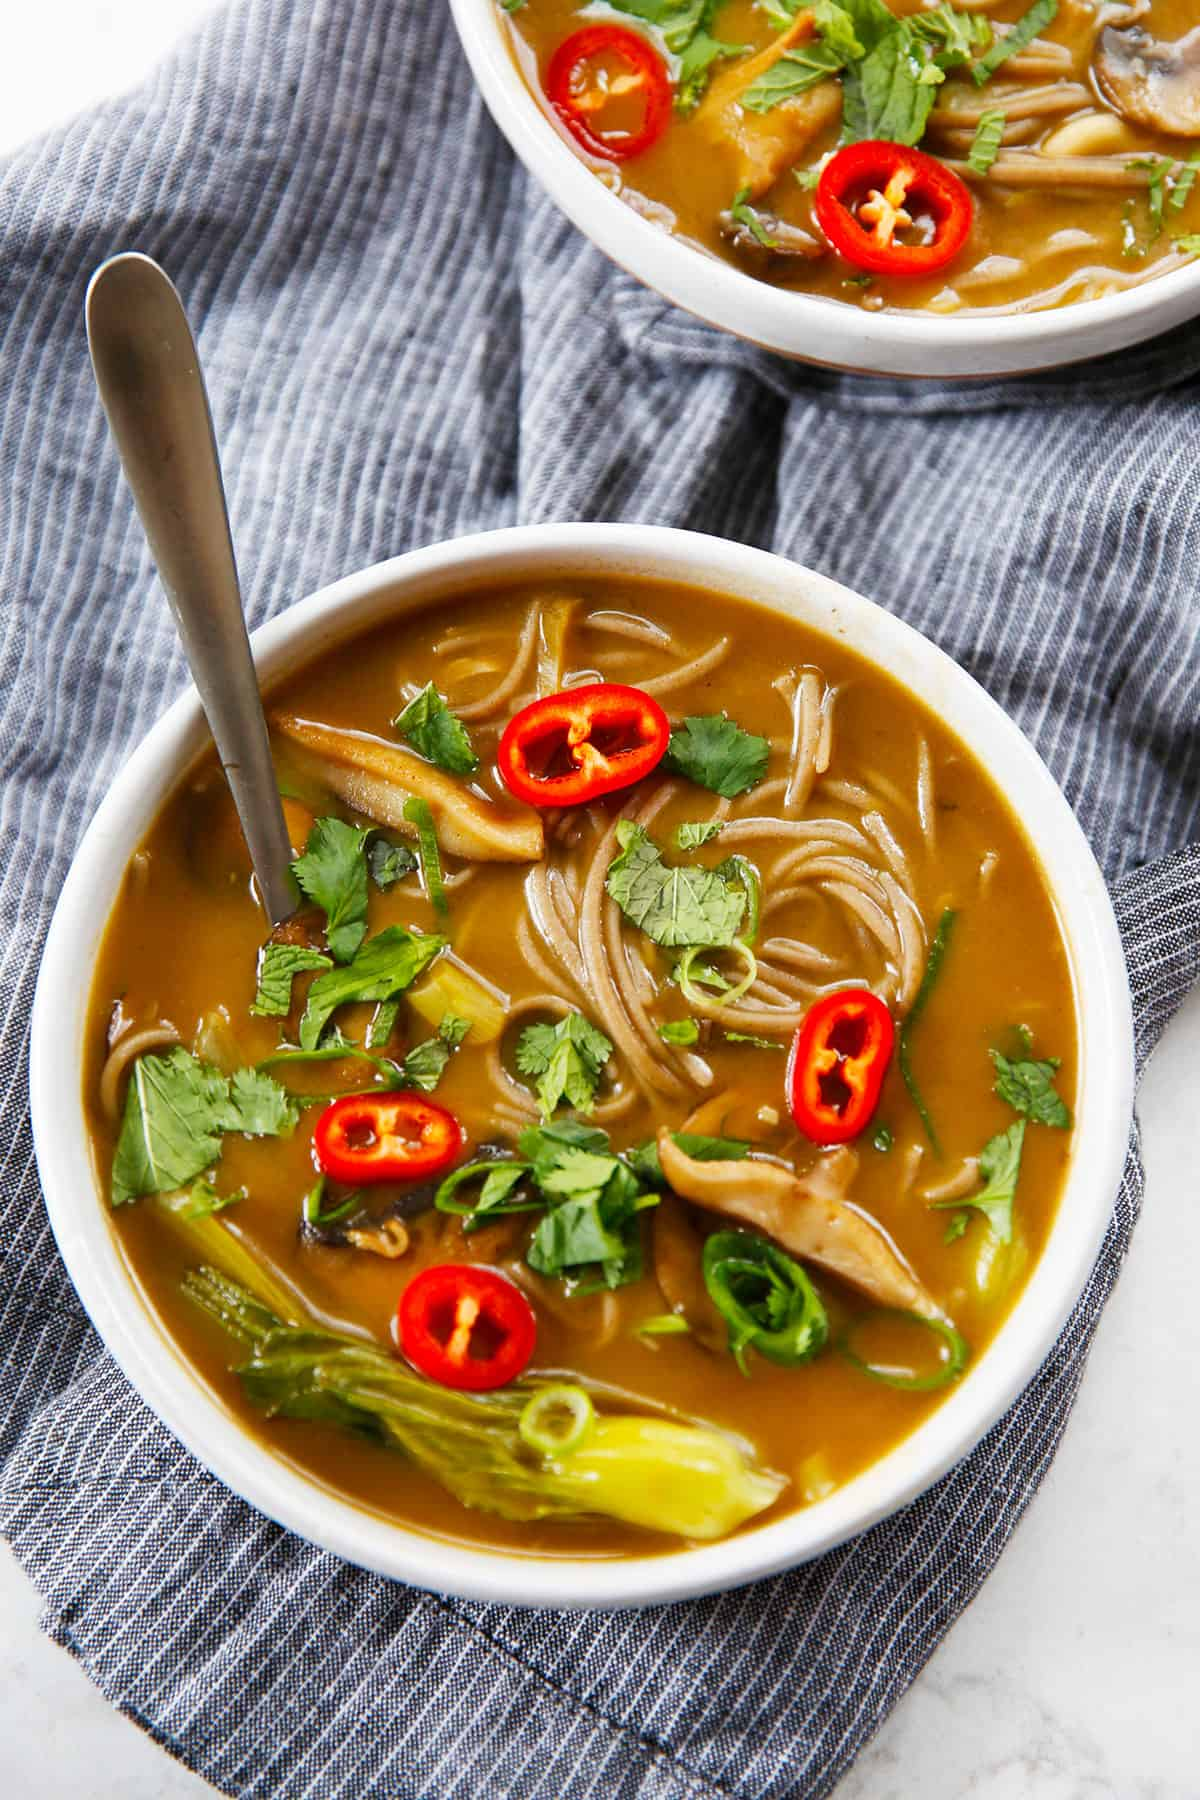 Spicy noodle soup in a bowl.